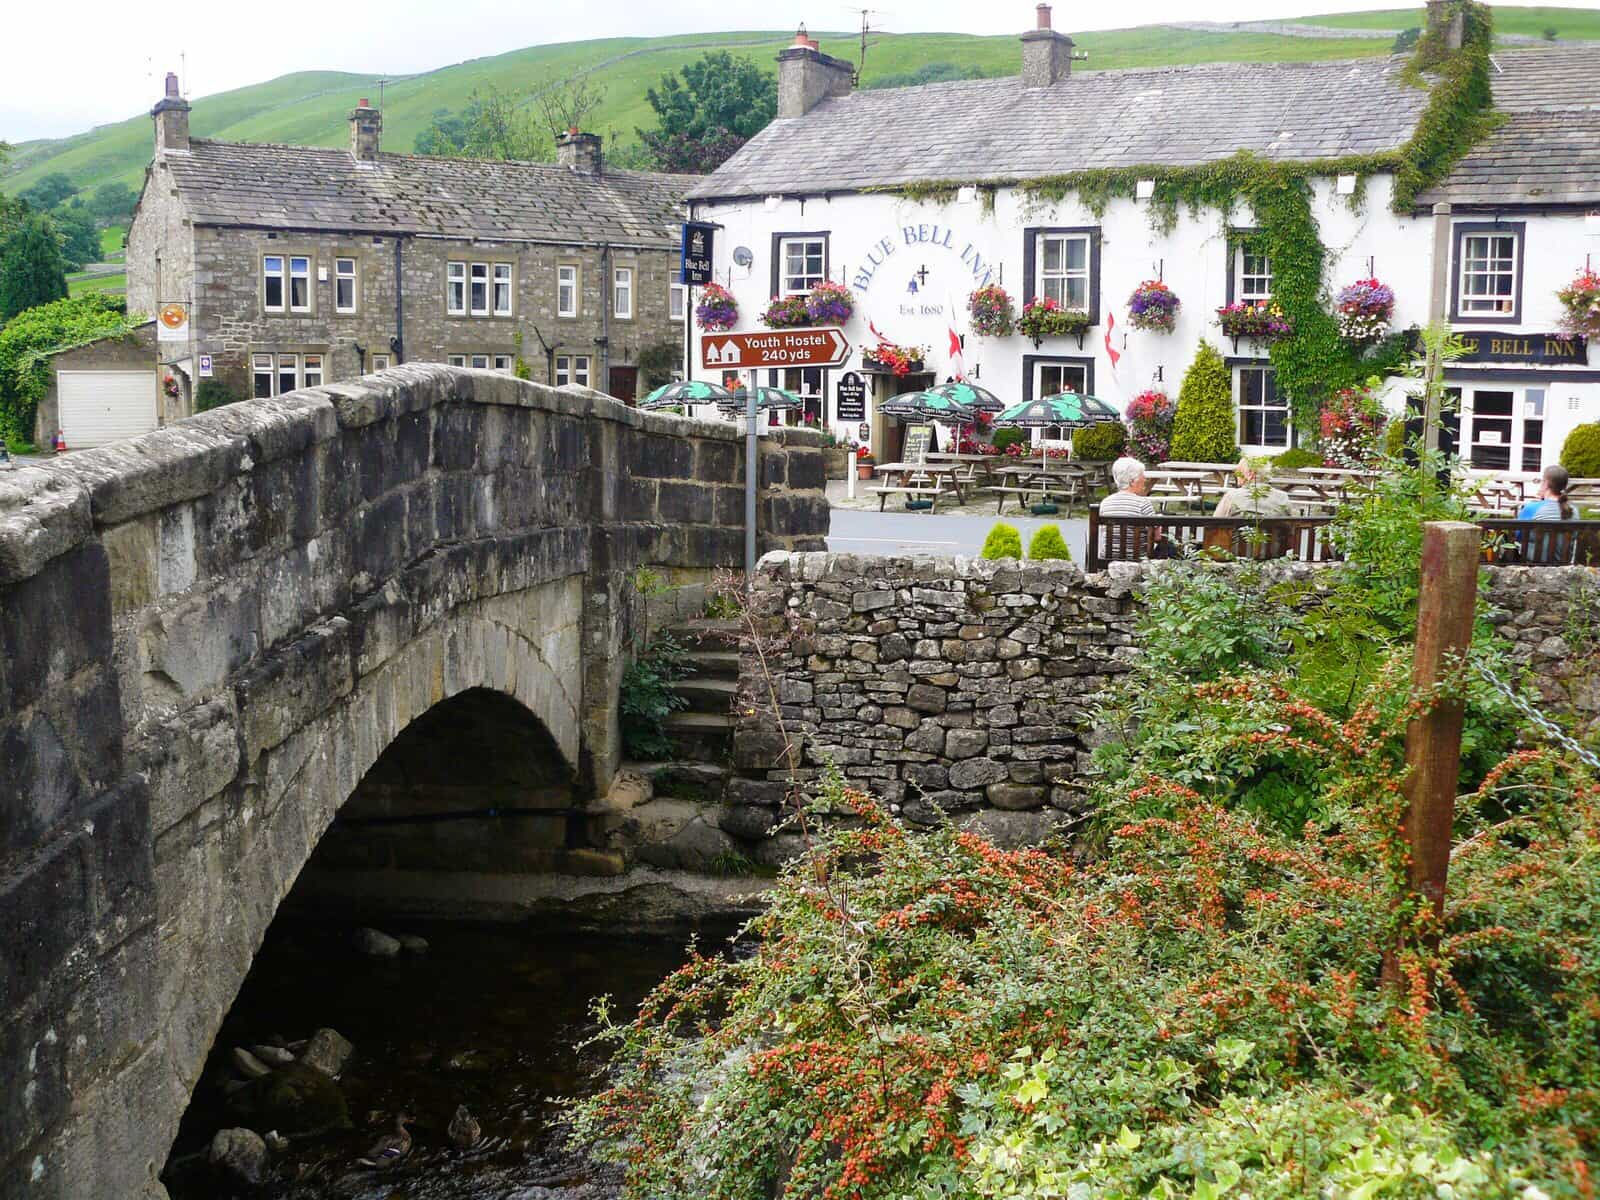 Blue Bell Inn, Kettlewell, The Dales Way